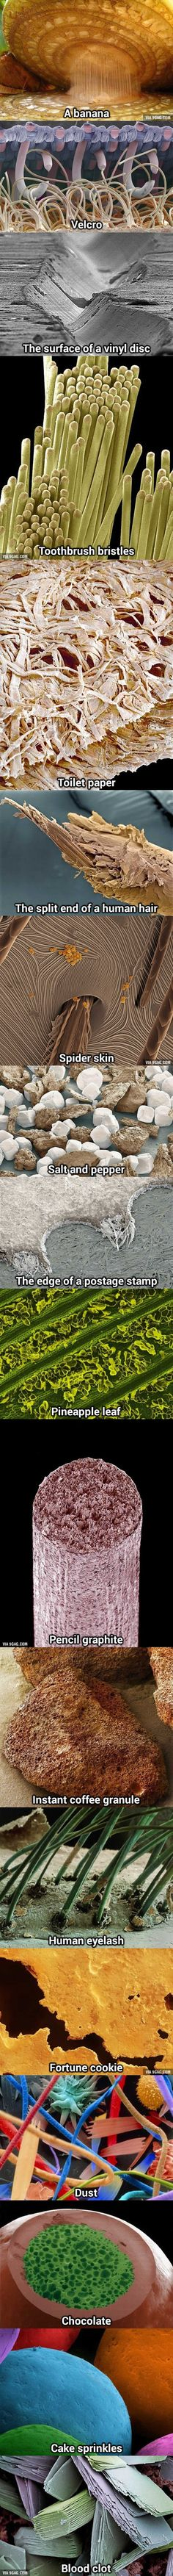 18 Everyday Things Made Awesome Under A Microscope. - Is it just me or does the dust look evil?